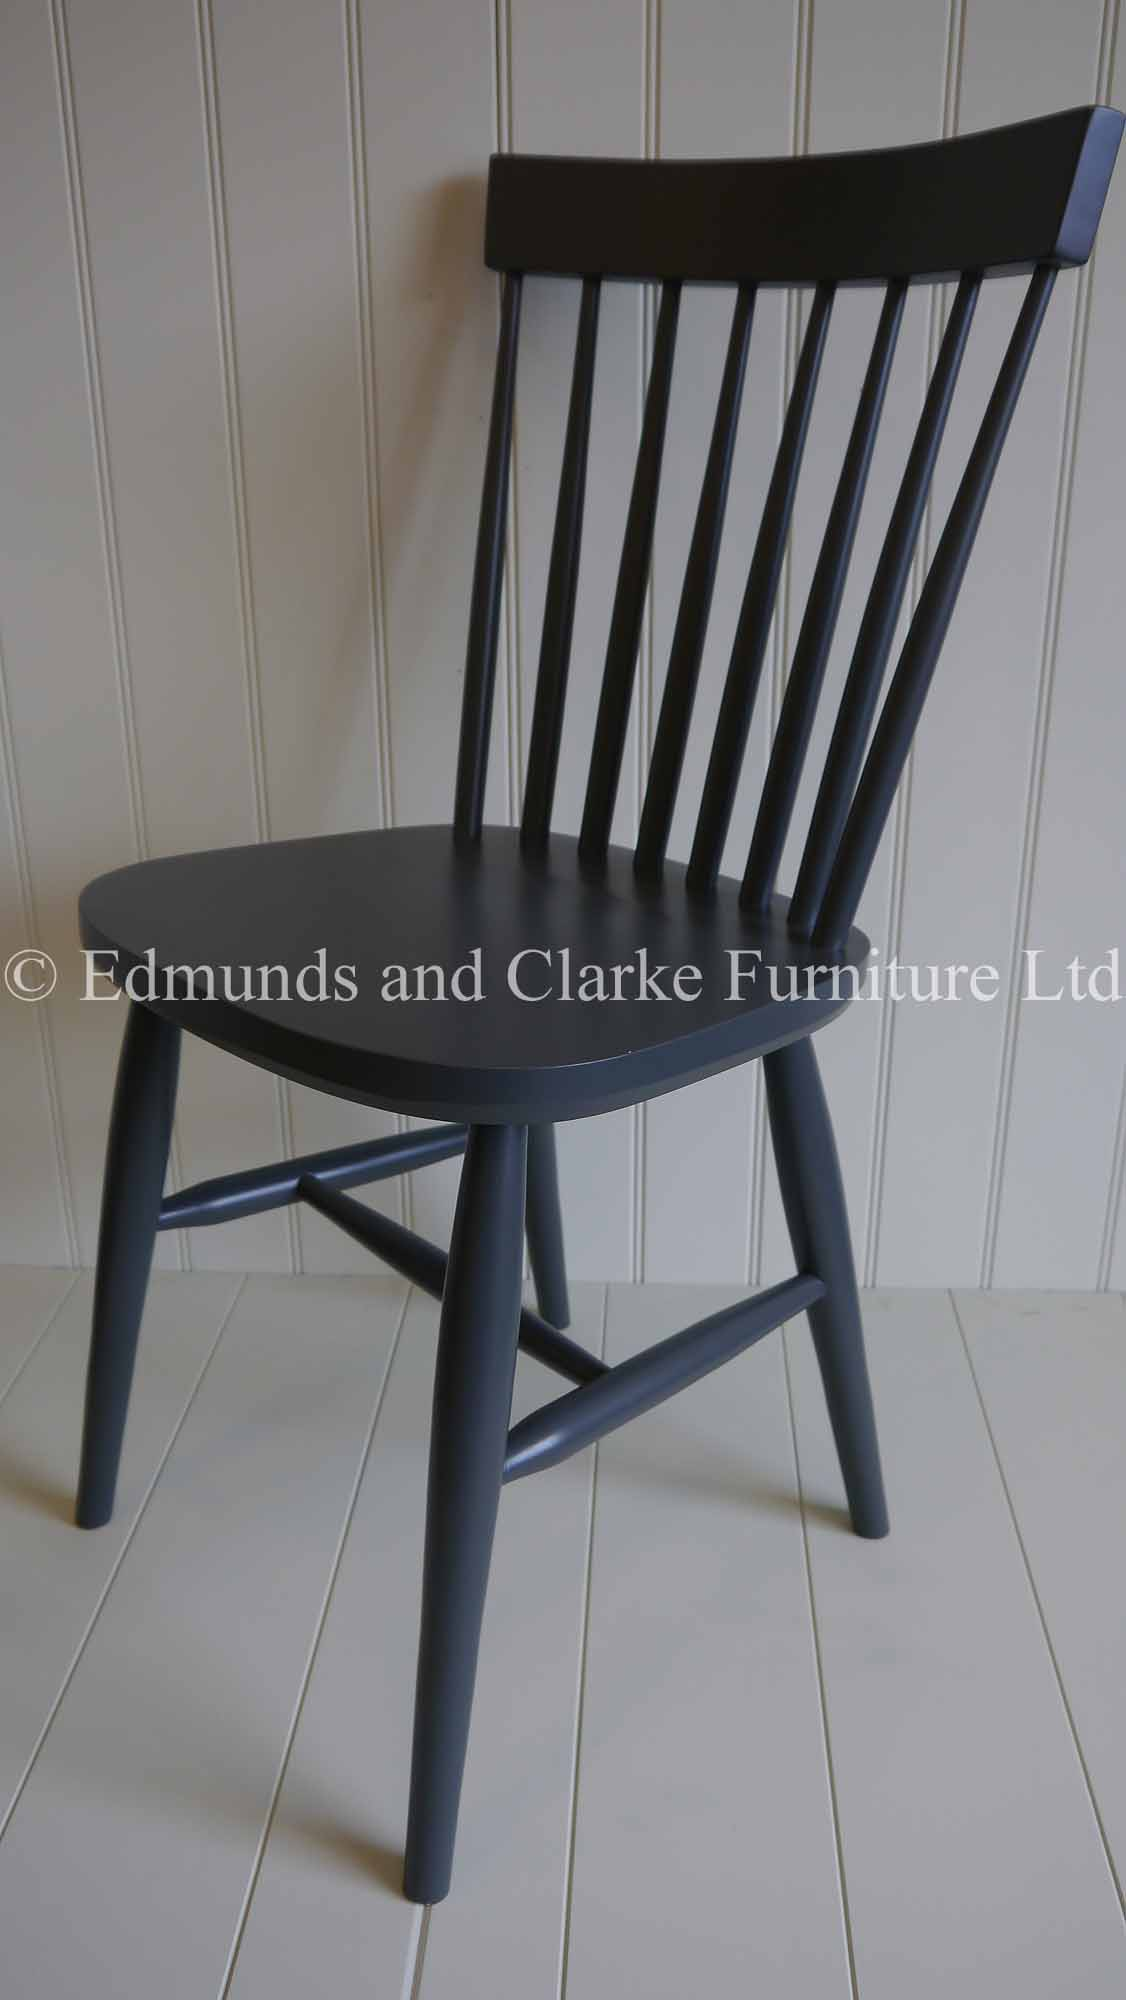 Edmunds Nordic style dining Chair. image shows custom painted chair in Farrow and ball. no fixed seat pad available